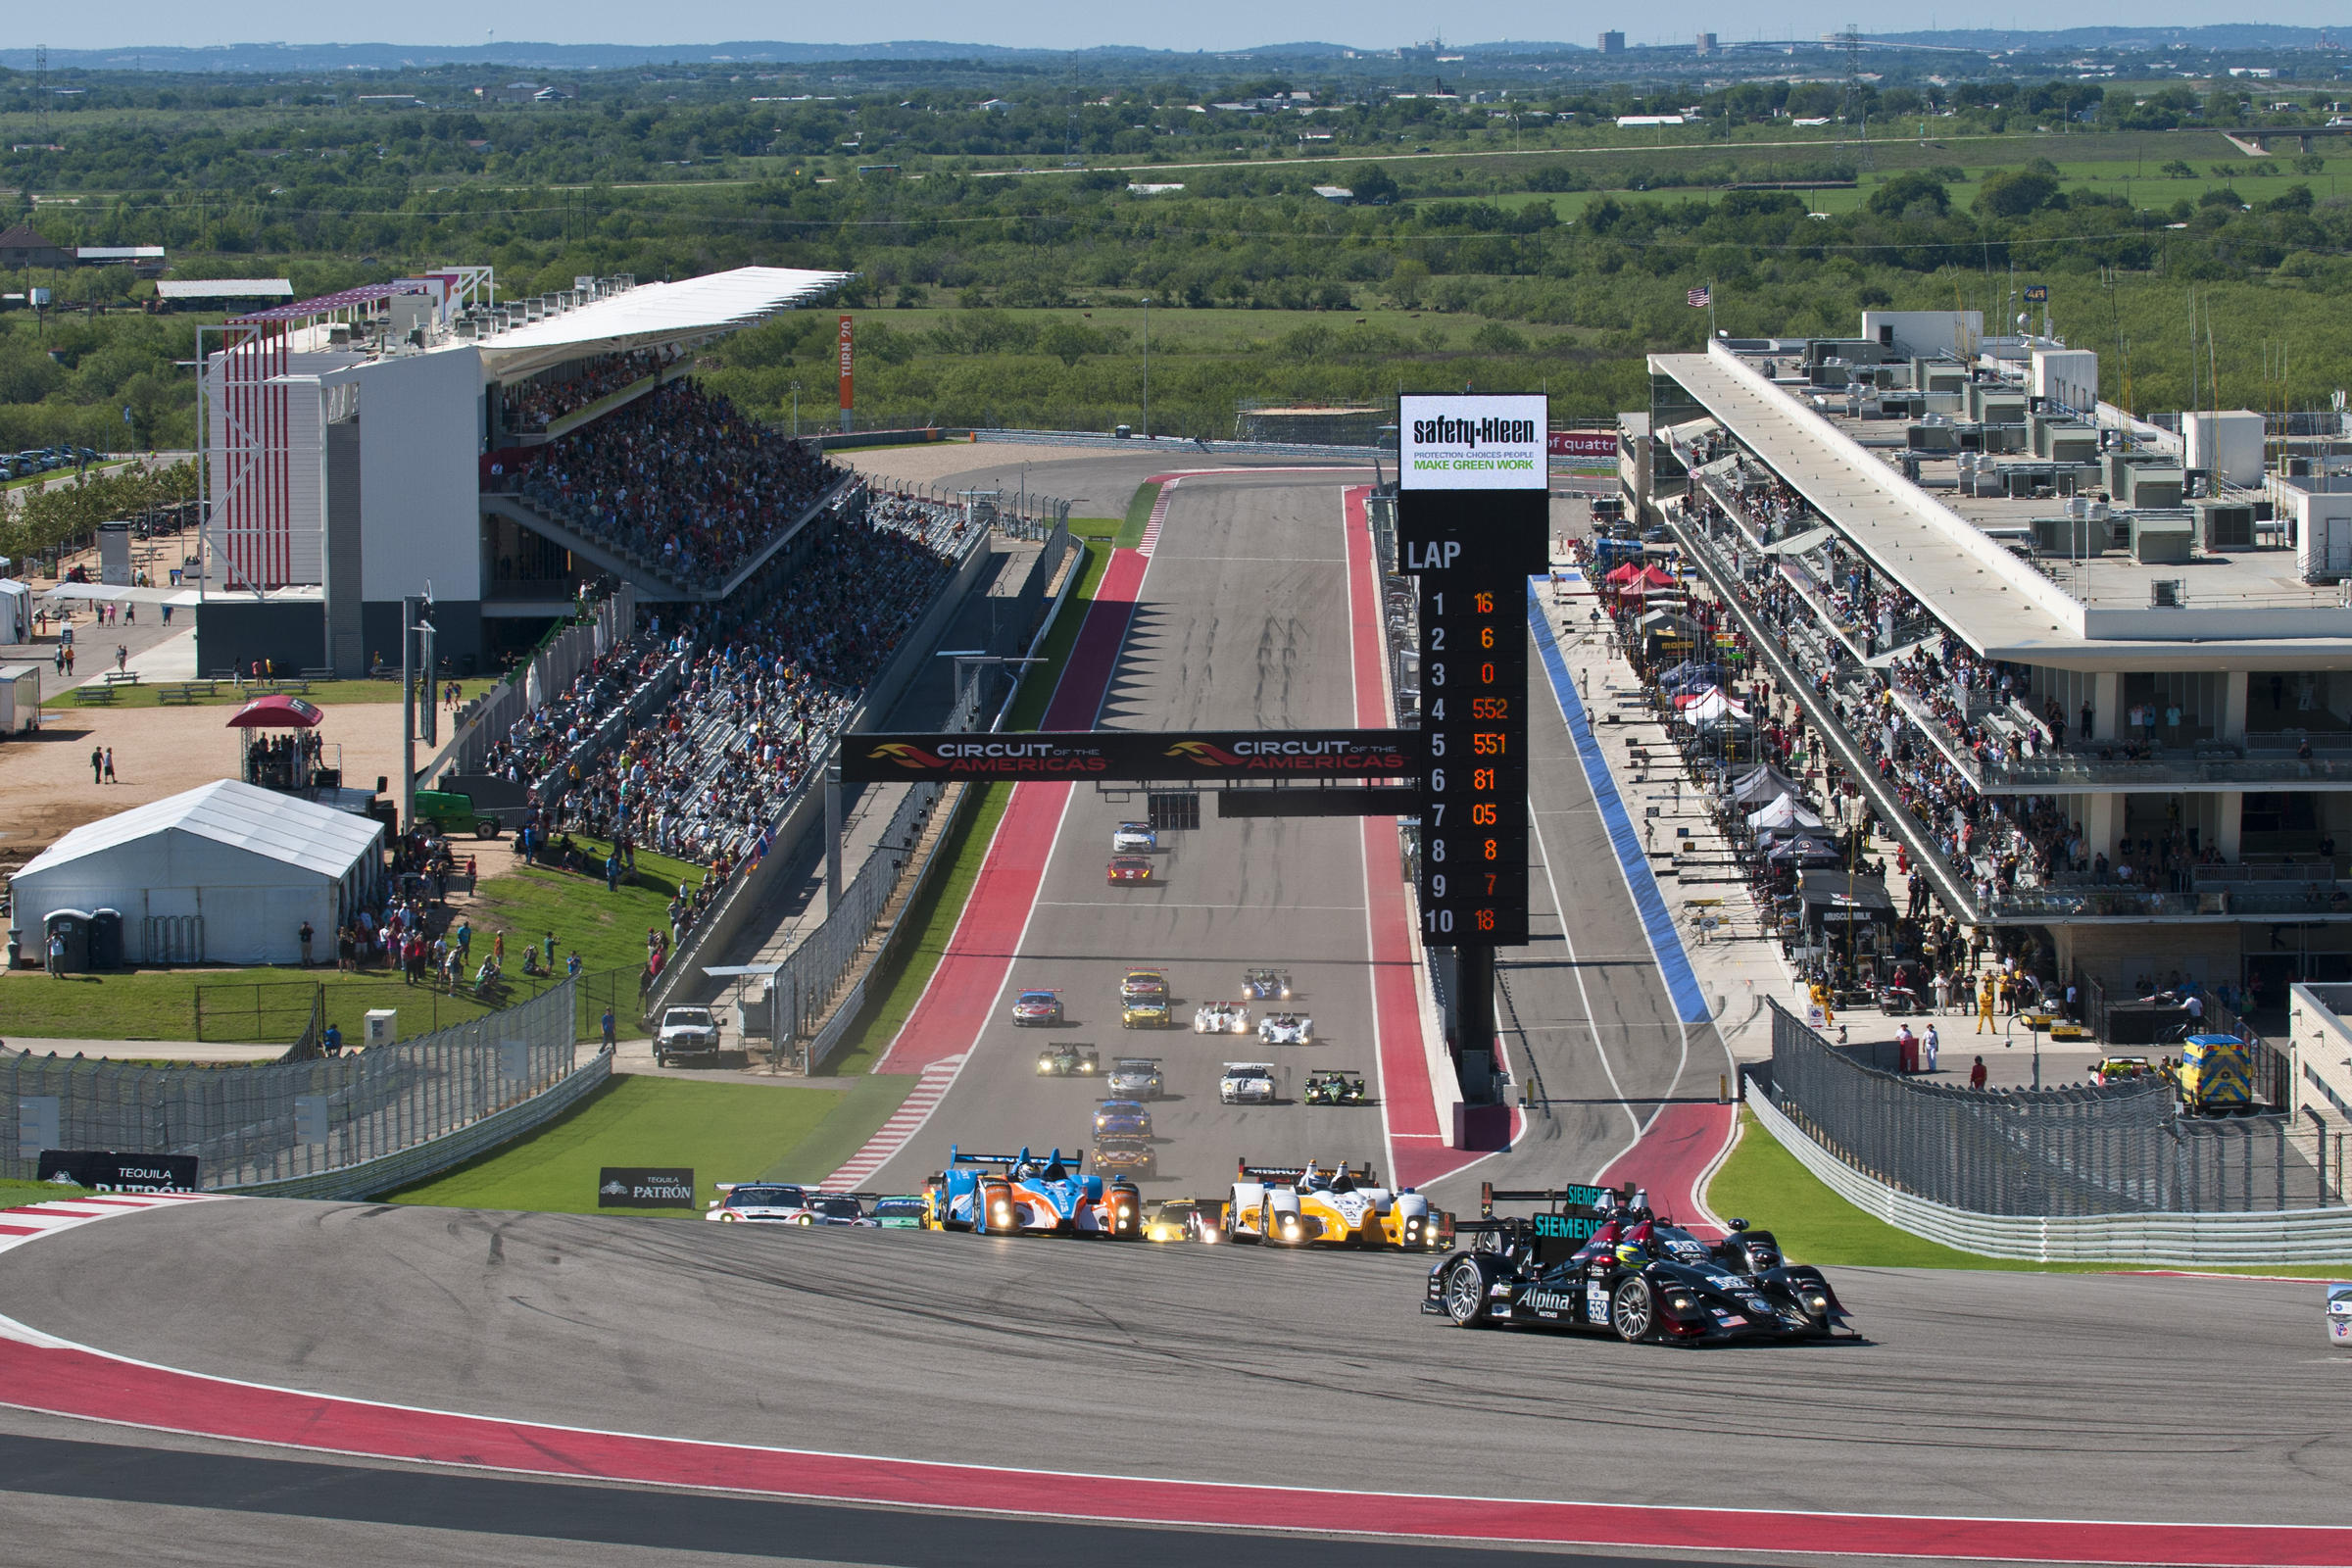 Cota Austin Schedule | MotoGP 2017 Info, Video, Points Table